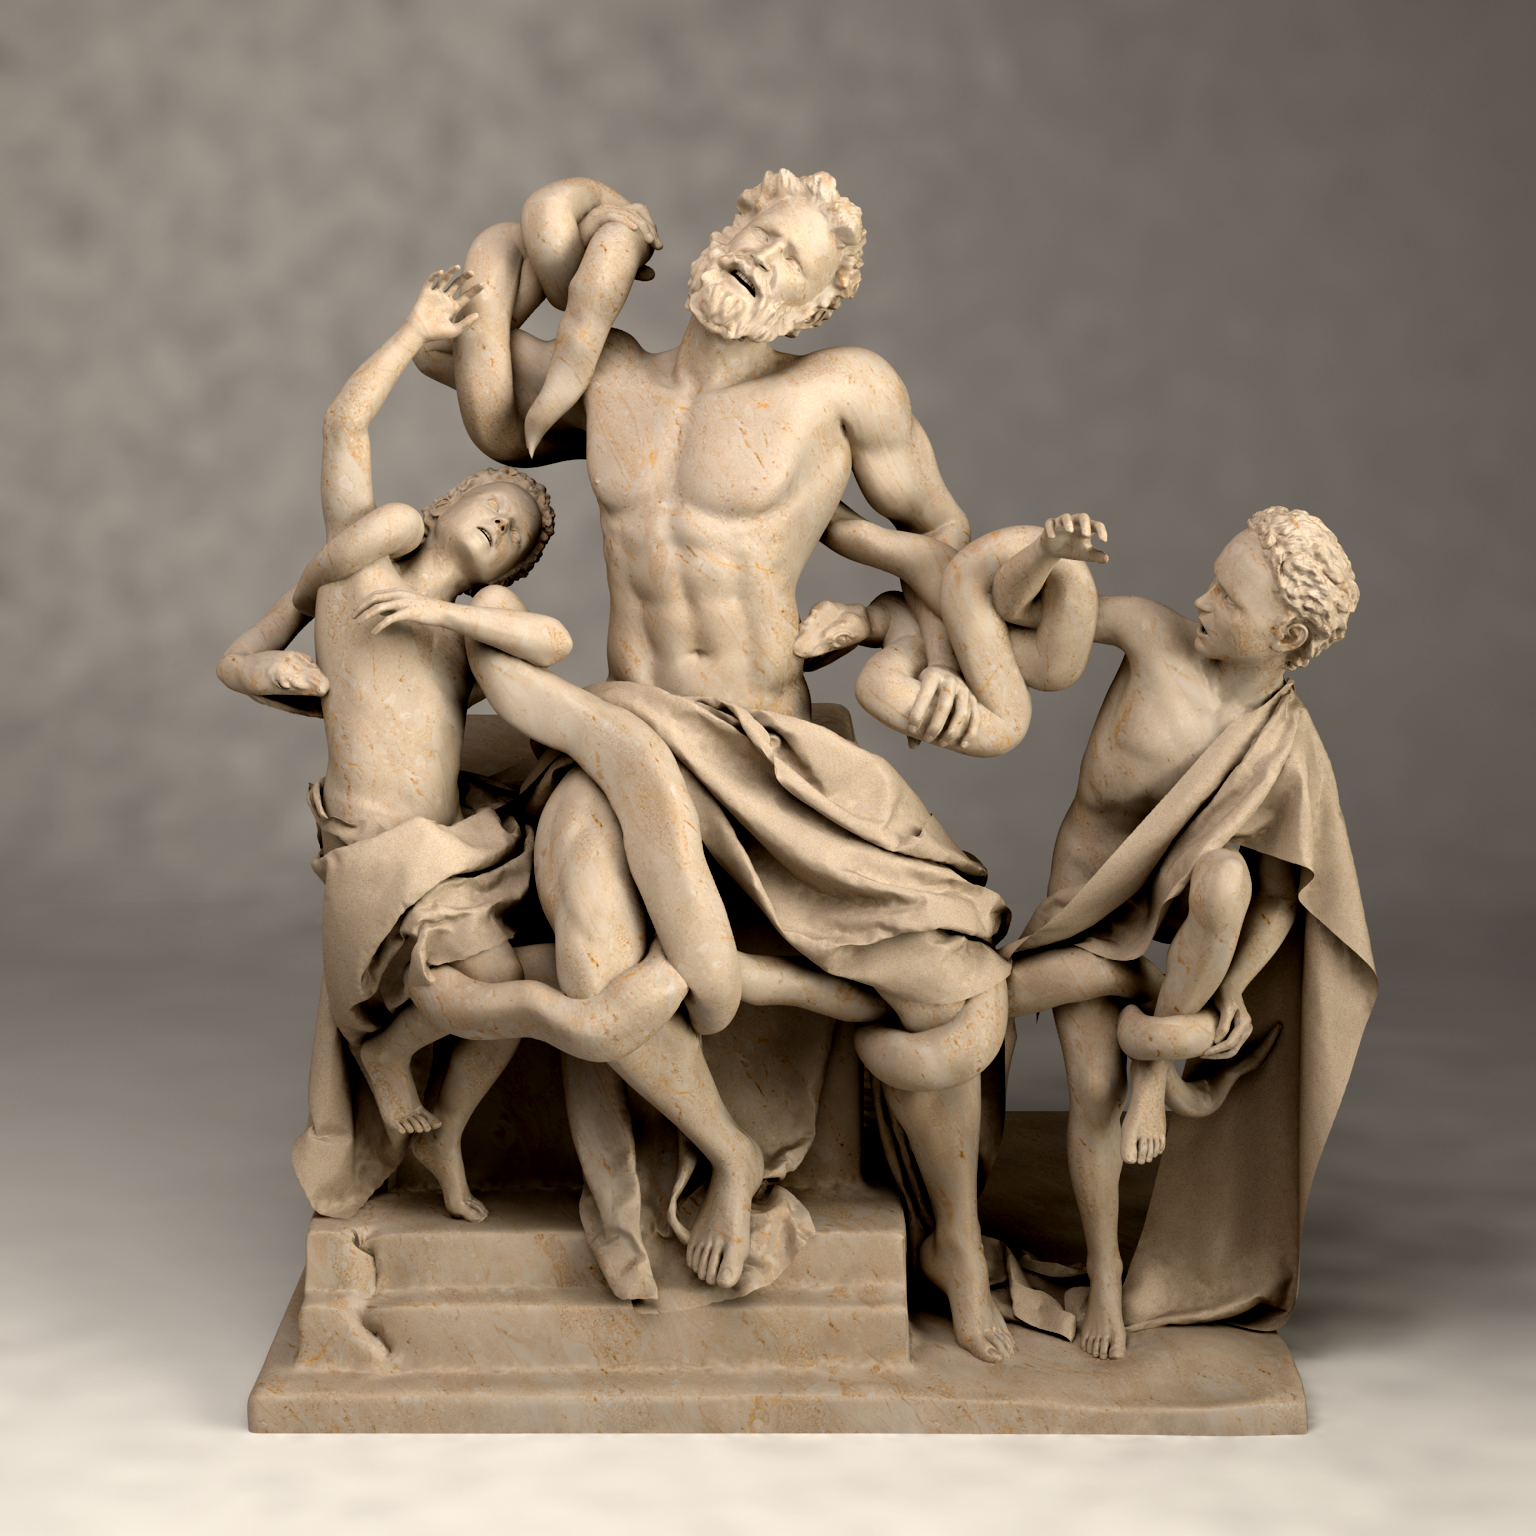 The statue of Laocoon and His Sons by vikastri on DeviantArt